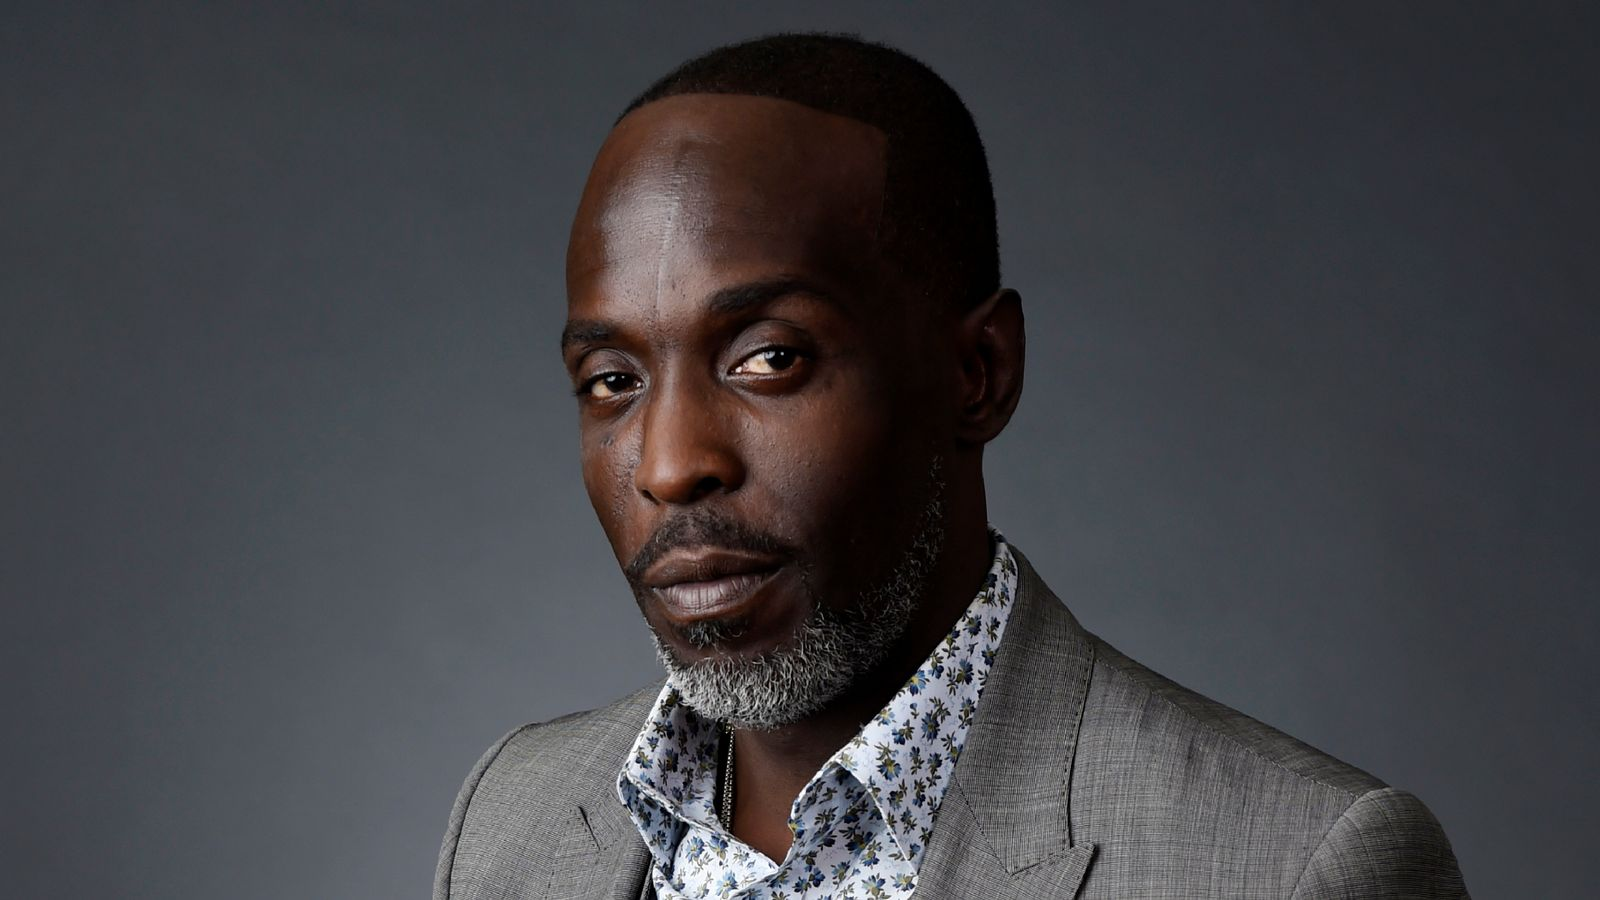 Michael K Williams: The Wire and Boardwalk Empire actor died of accidental drug overdose, post-mortem examination finds